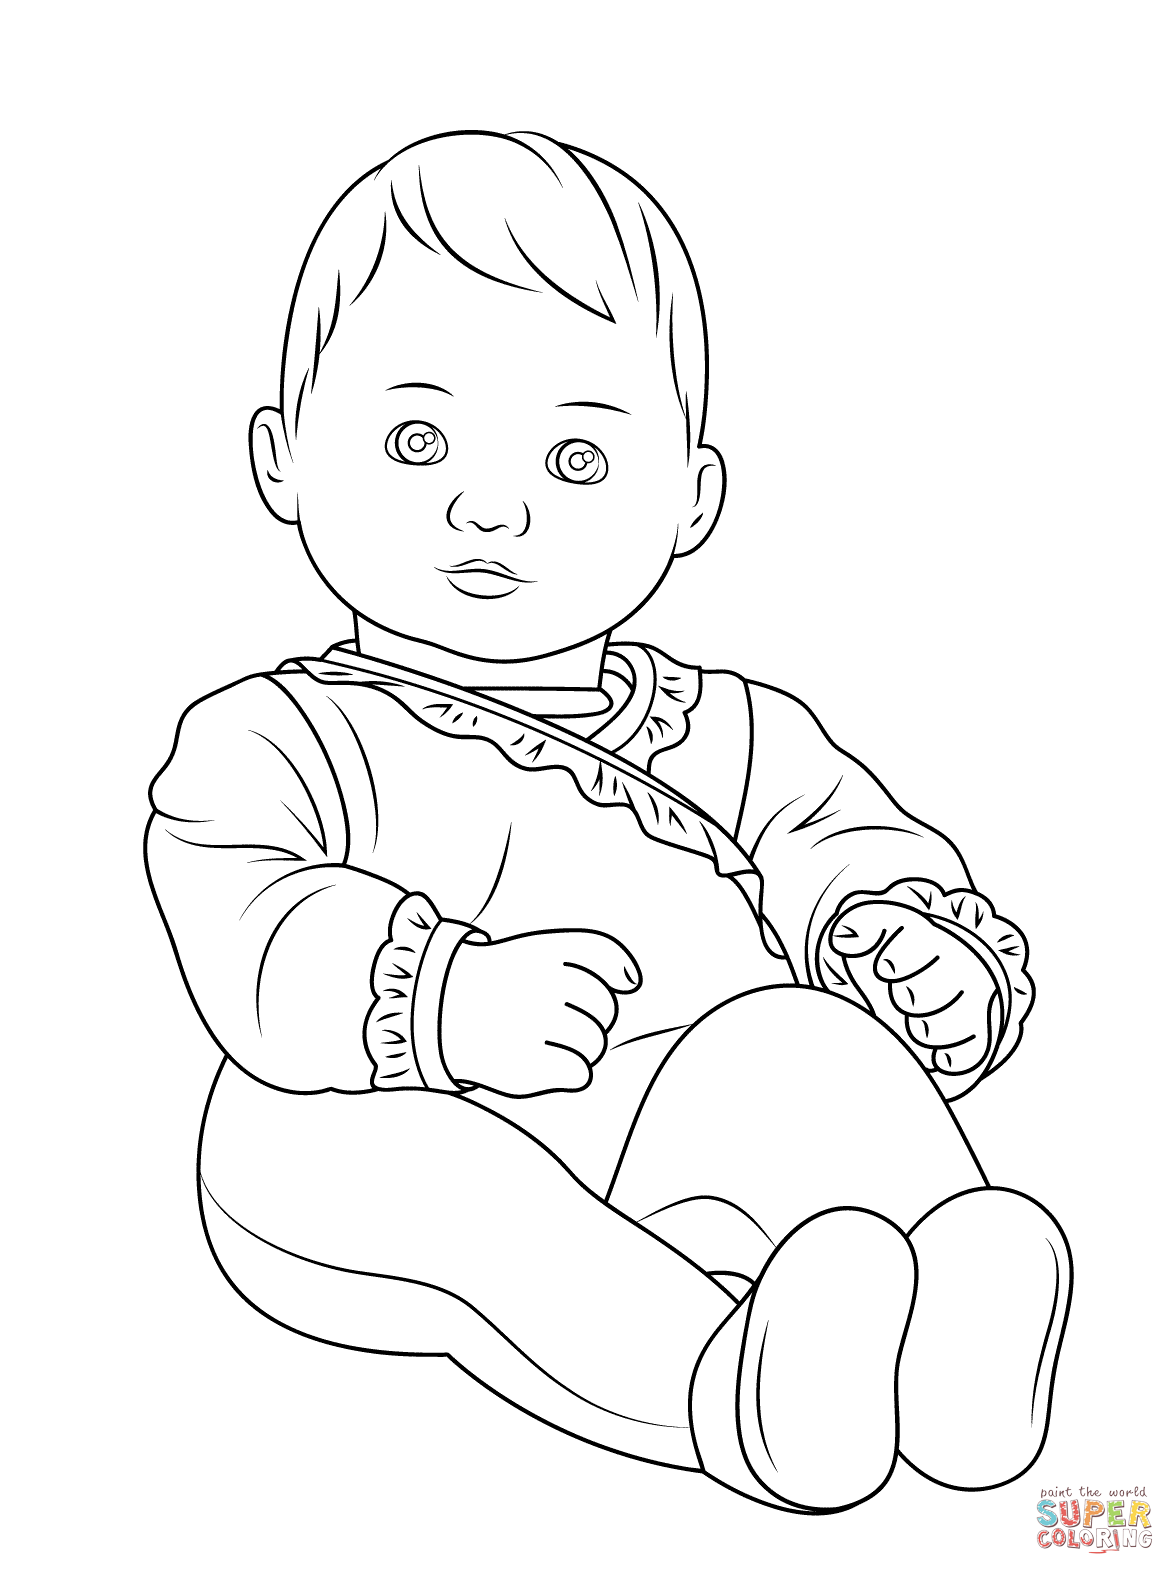 Printable American Girl Doll Coloring Pages Baby Coloring Pages Cinderella Coloring Pages Coloring Pages For Boys